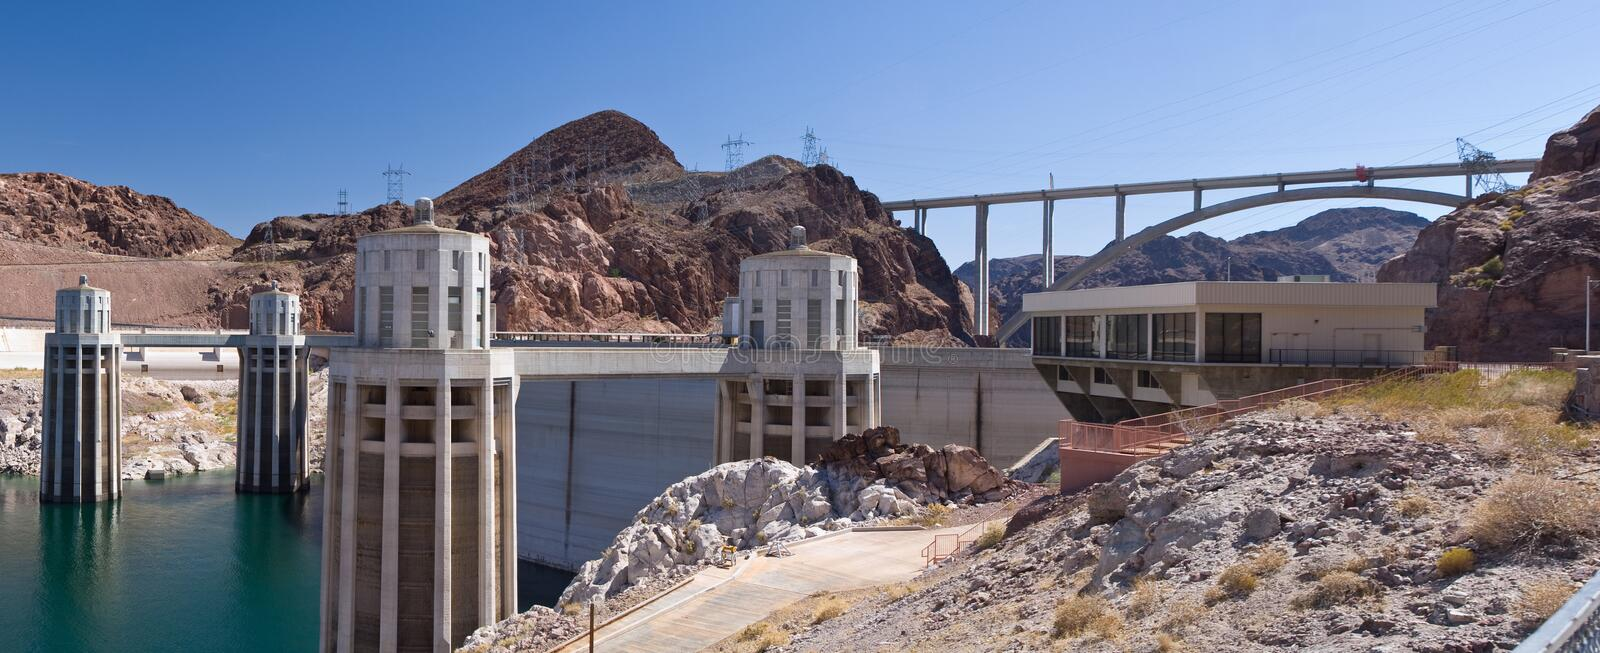 Download Hoover dam stock image. Image of nevada, architecture - 16111819